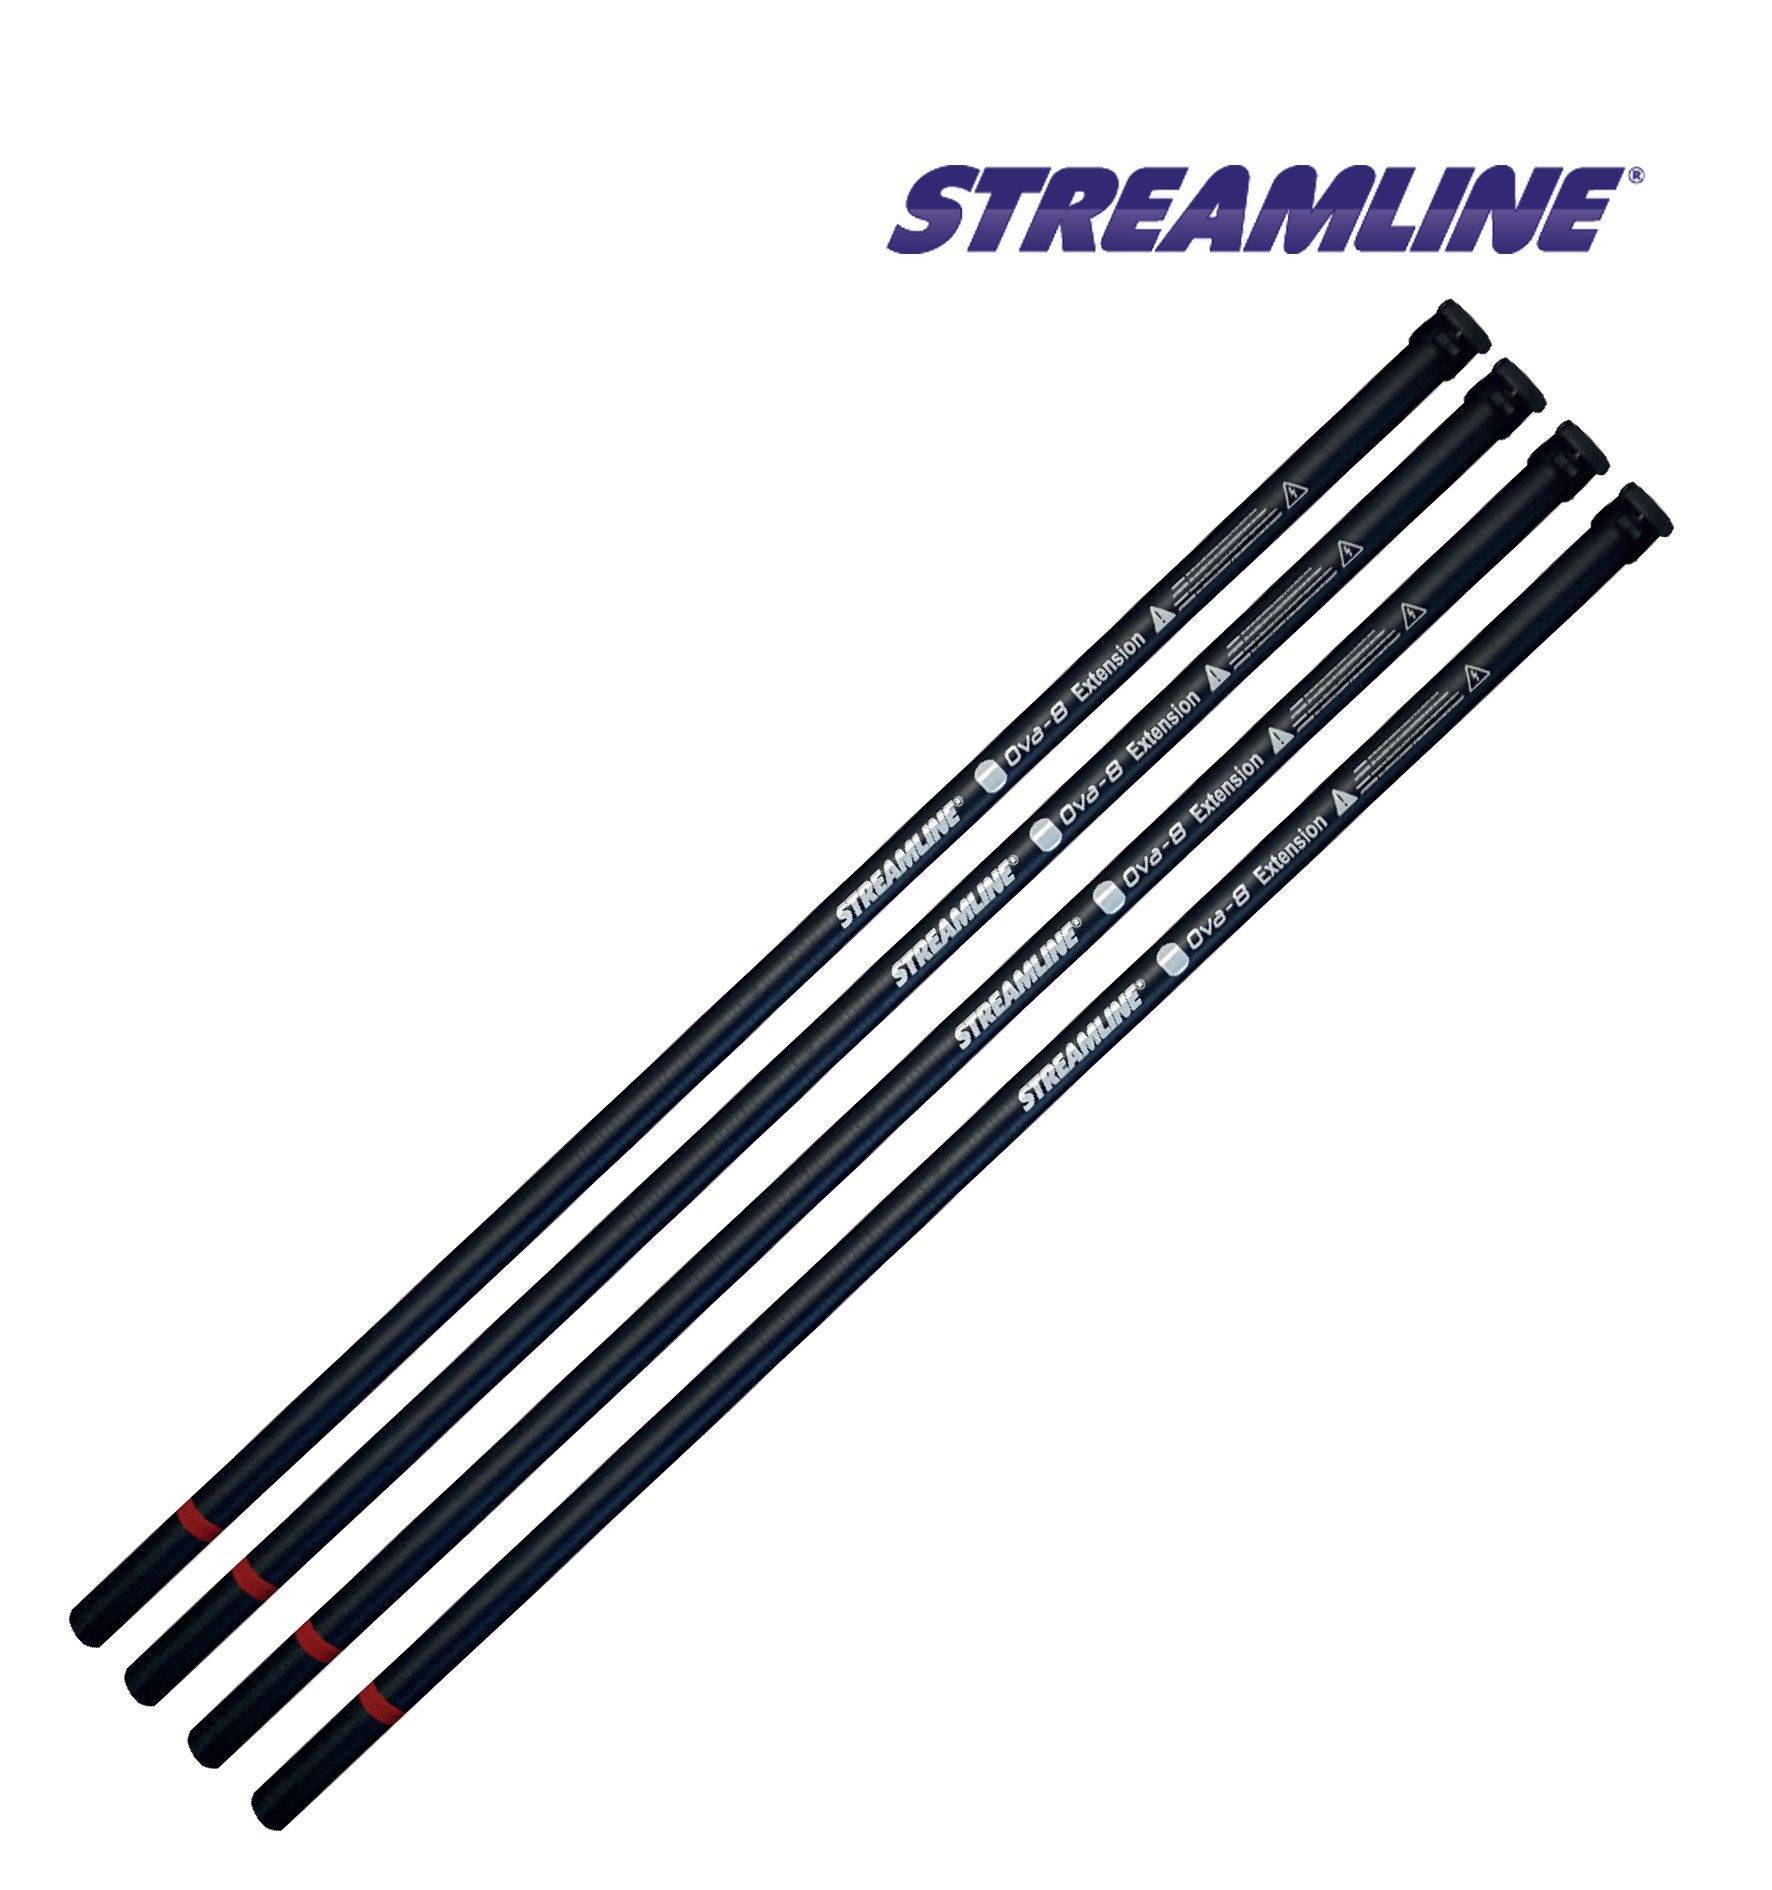 STREAMLINE® OVA8® pole extensions – 17ft to 40ft and 25ft to 45ft